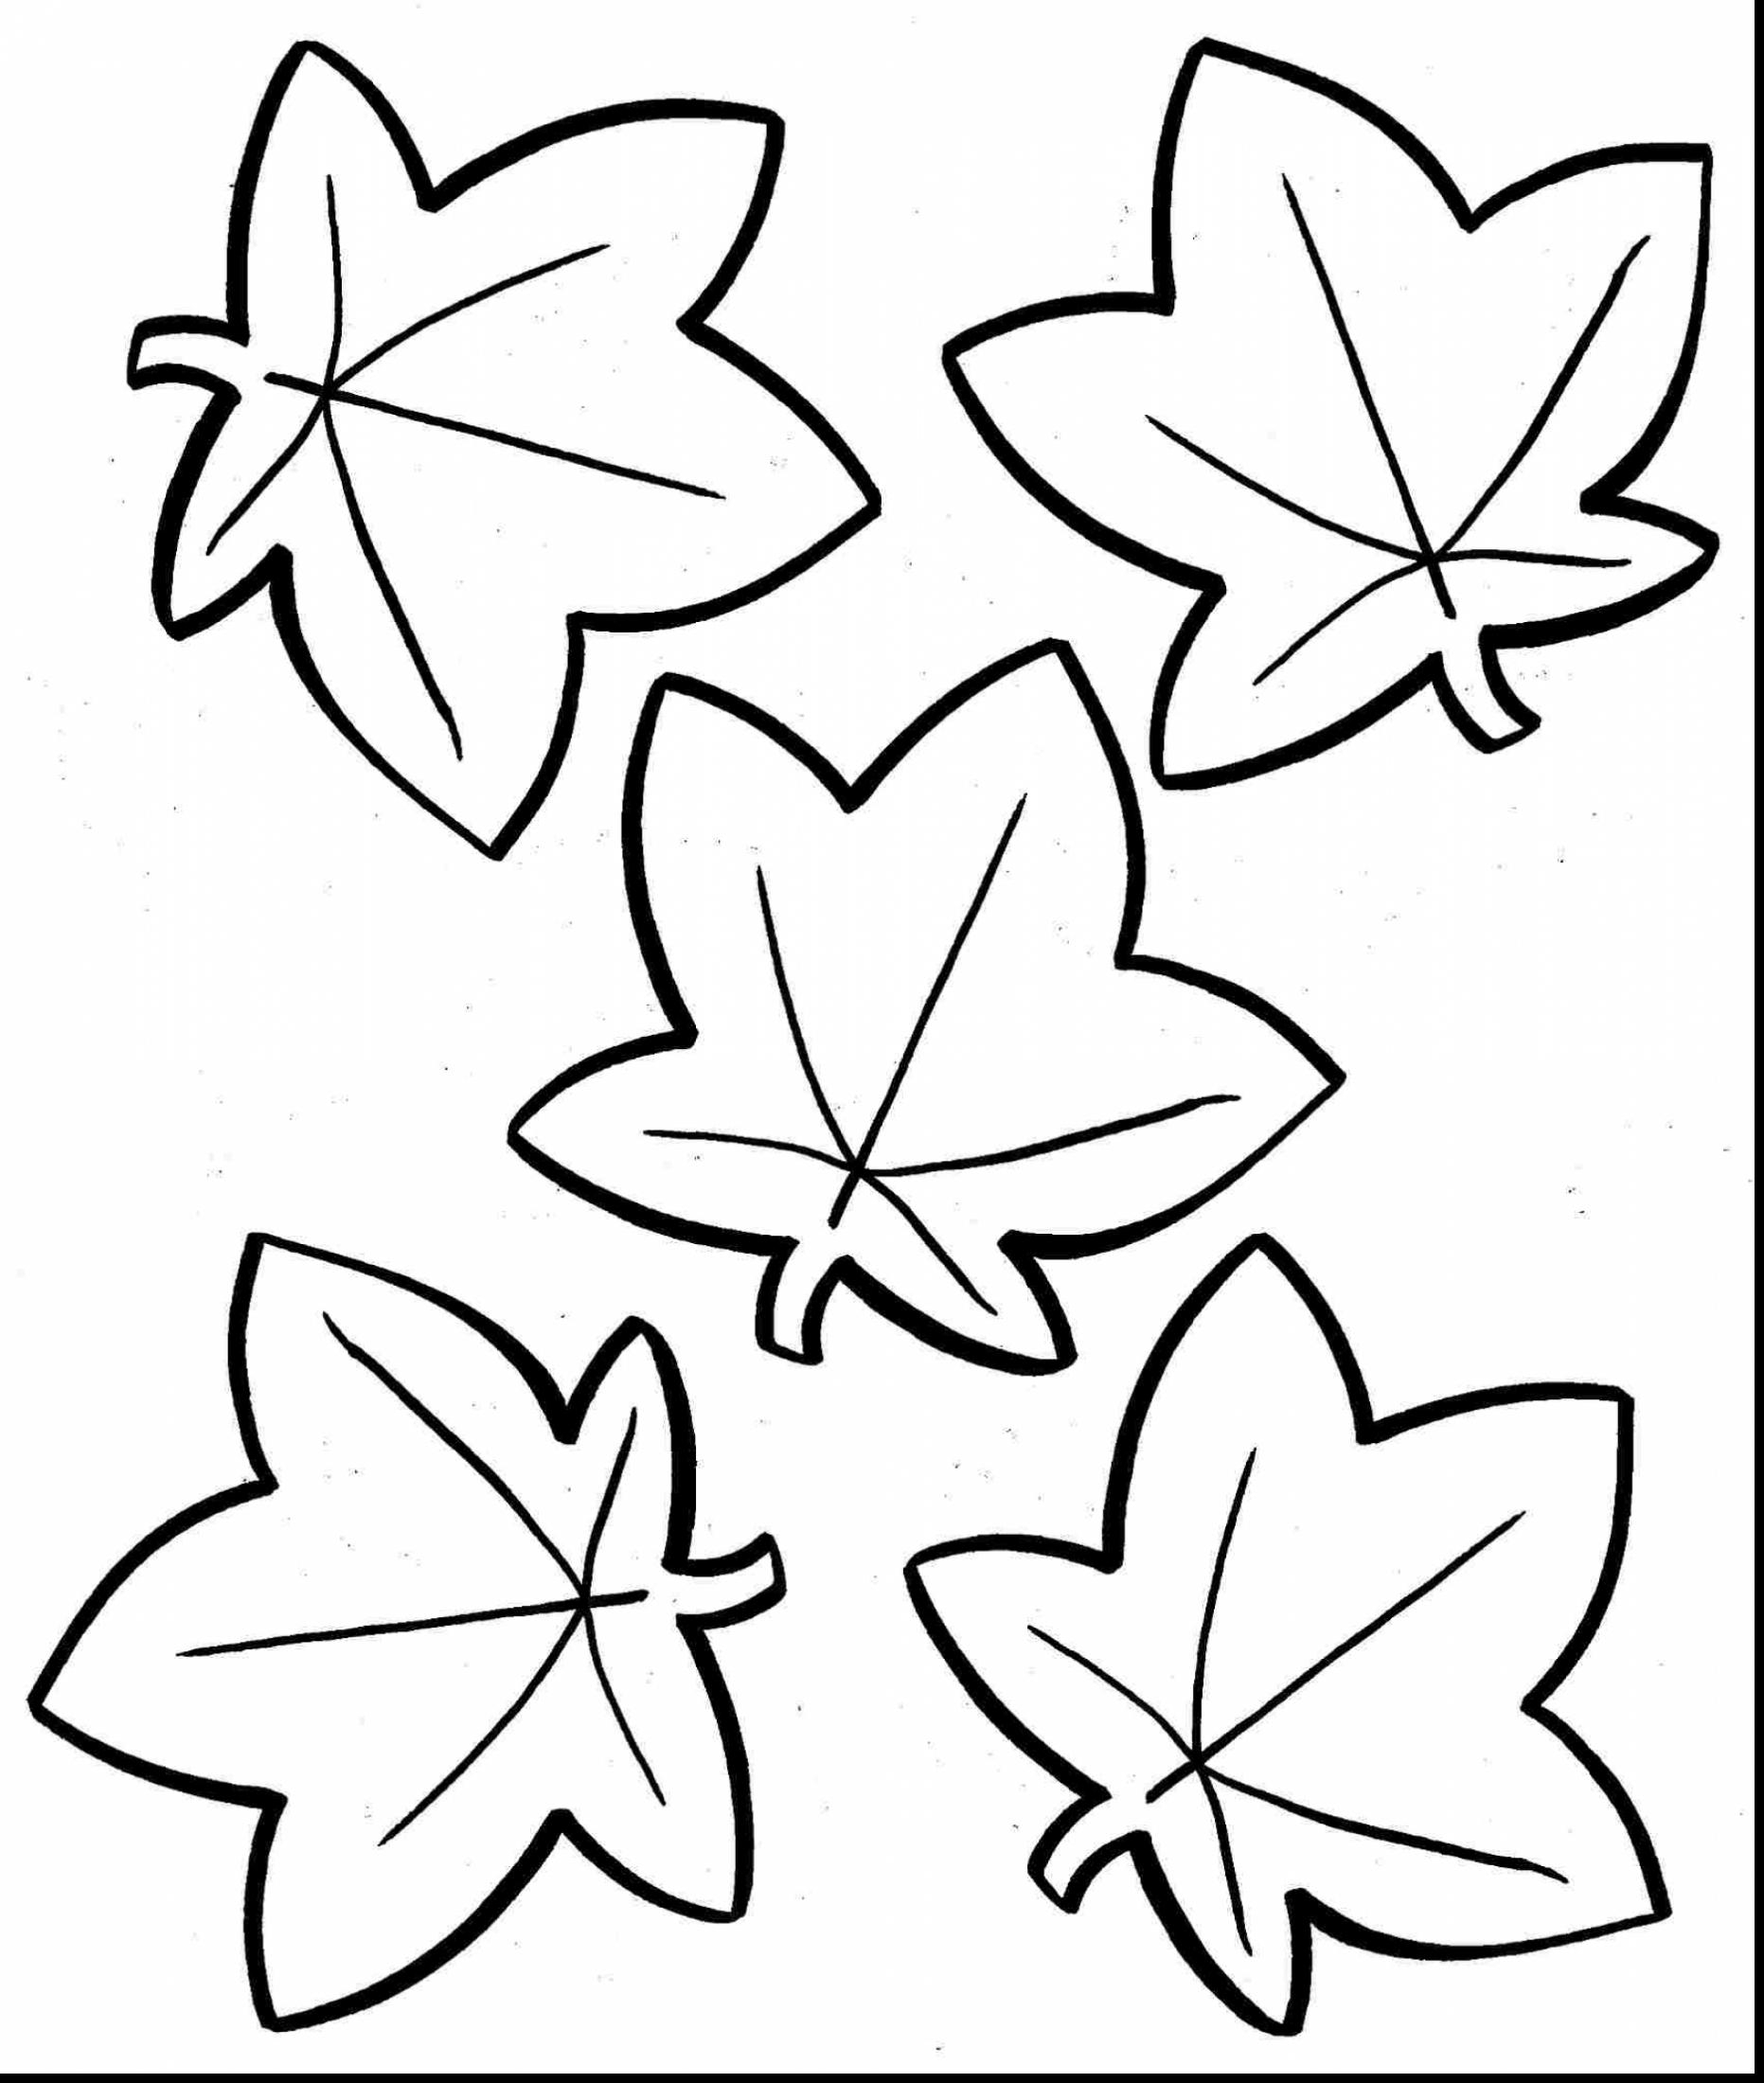 Leaf Coloring Pages for Preschool Gallery Of Free Preschool Coloring Pages Page for Kindergarten School Download